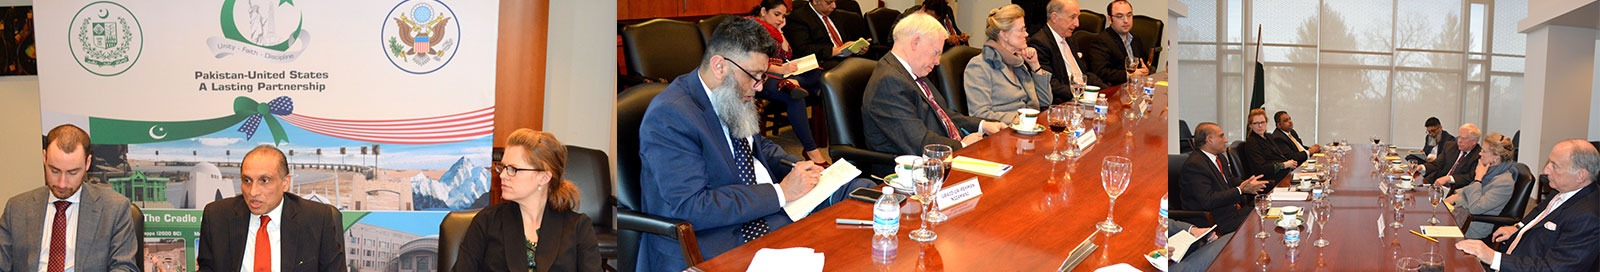 Ambassador-Aizaz-Ahmad-Chaudhry-hosted-a-select-group-of-South-Asia-experts